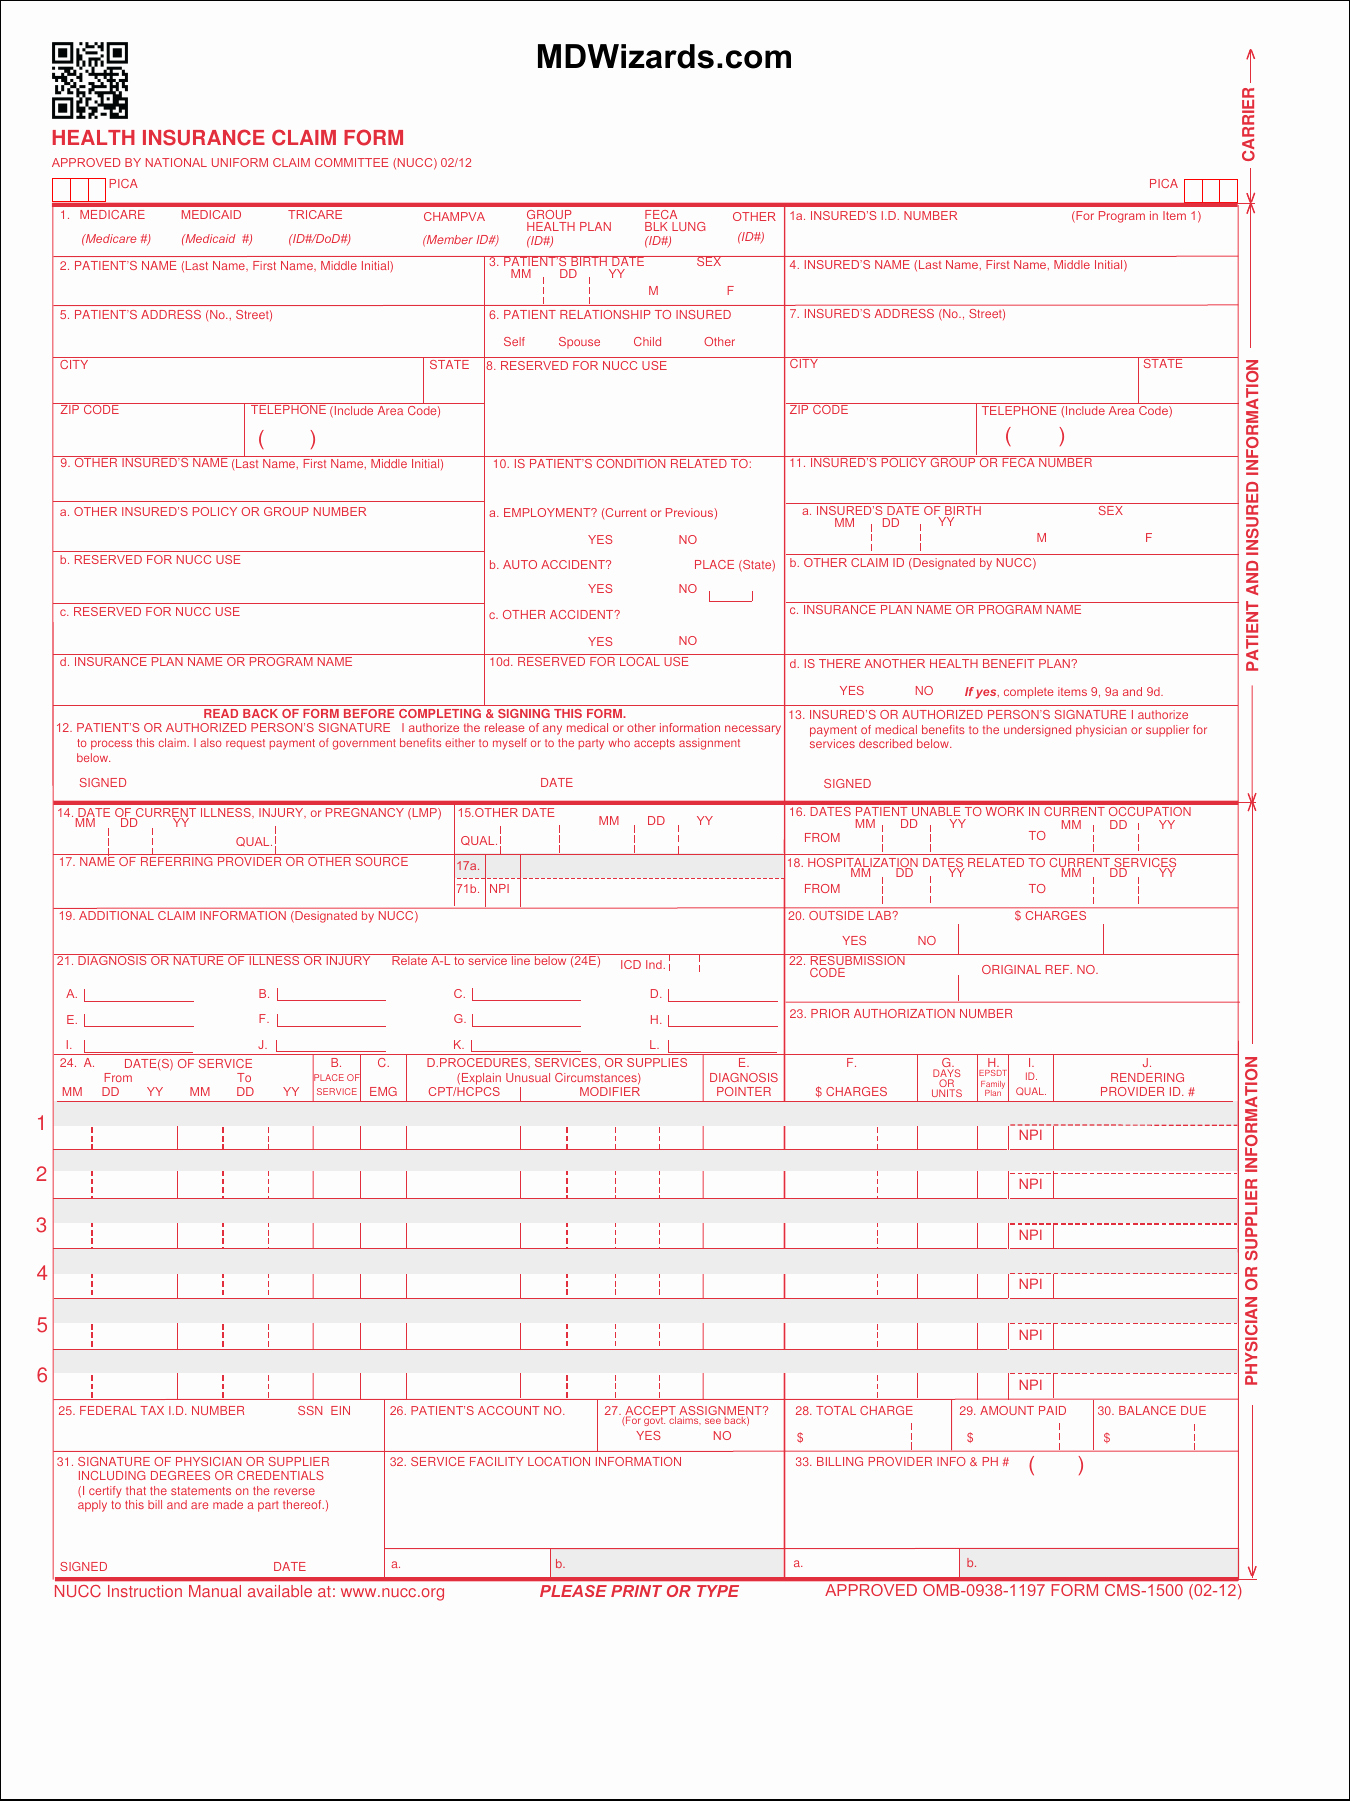 Free Cms 1500 Template for Word Luxury Hcfa 1500 form Olalaopx